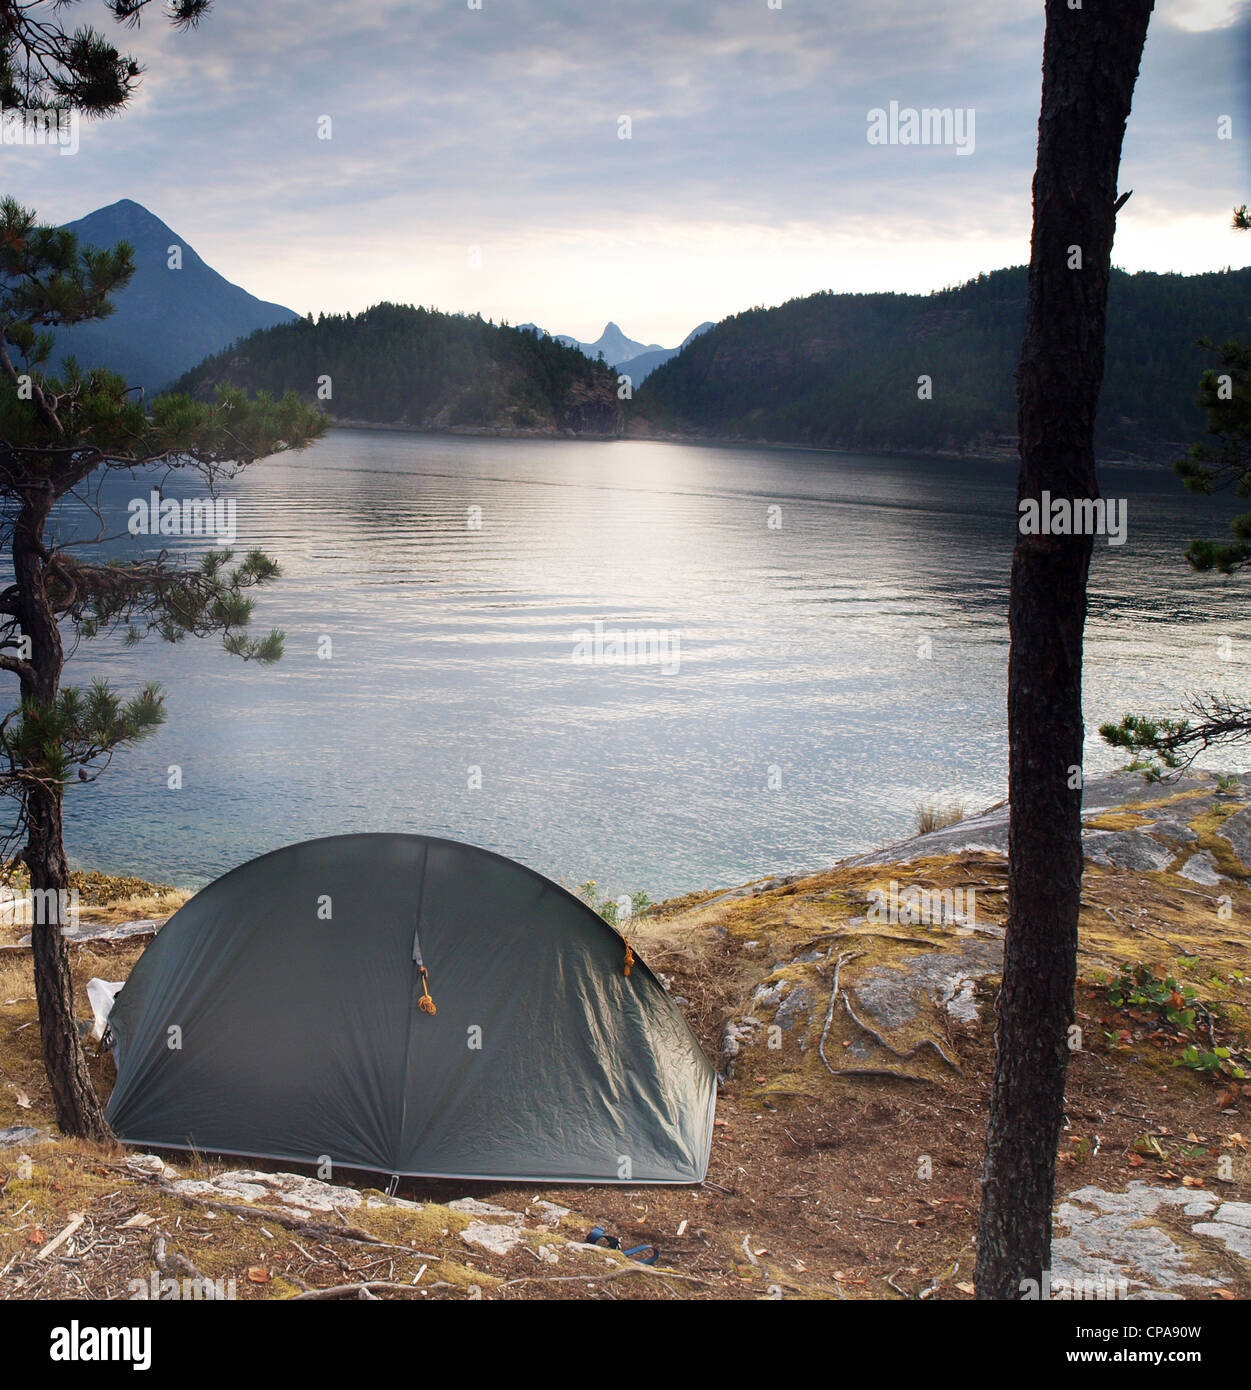 A tent pitched on one of The Curme Islands in Desolation Sound, British Columbia, Canada - Stock Image